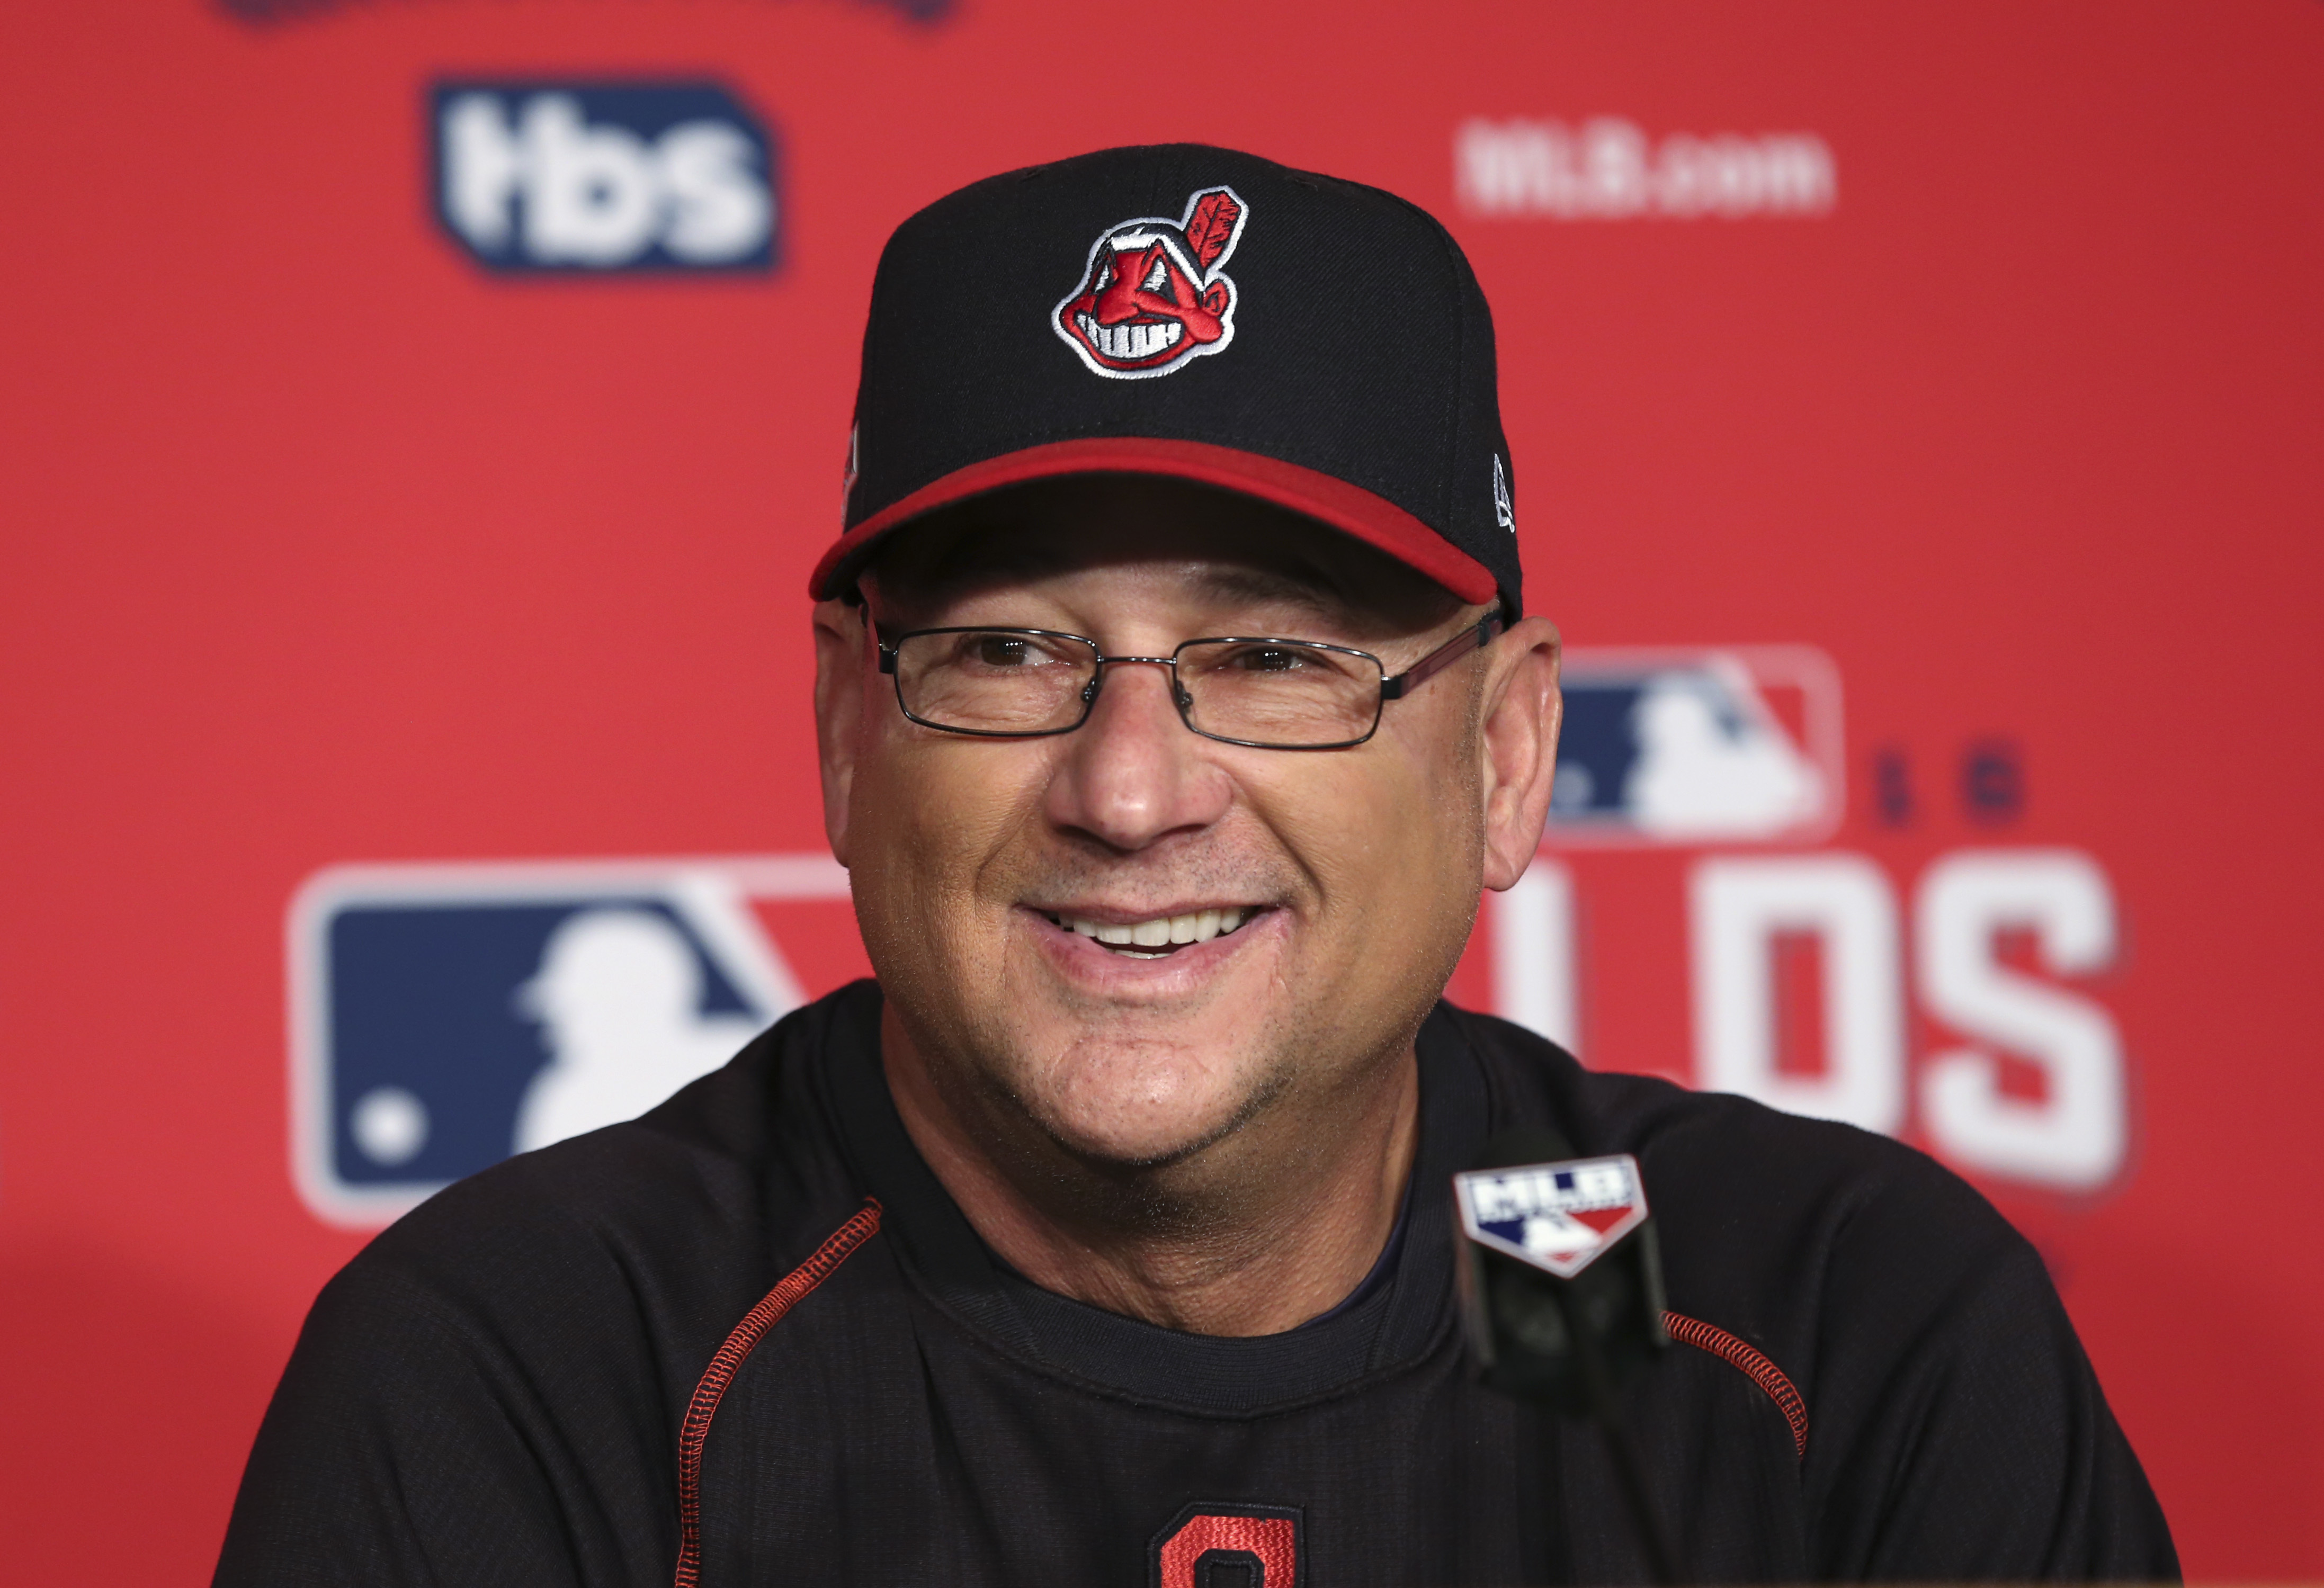 Cleveland Indians manager Terry Francona speaks to the media before Game 2 of baseball's American League Division Series against the Boston Red Sox, Friday, Oct. 7, 2016, in Cleveland. (AP Photo/Aaron Josefczyk)